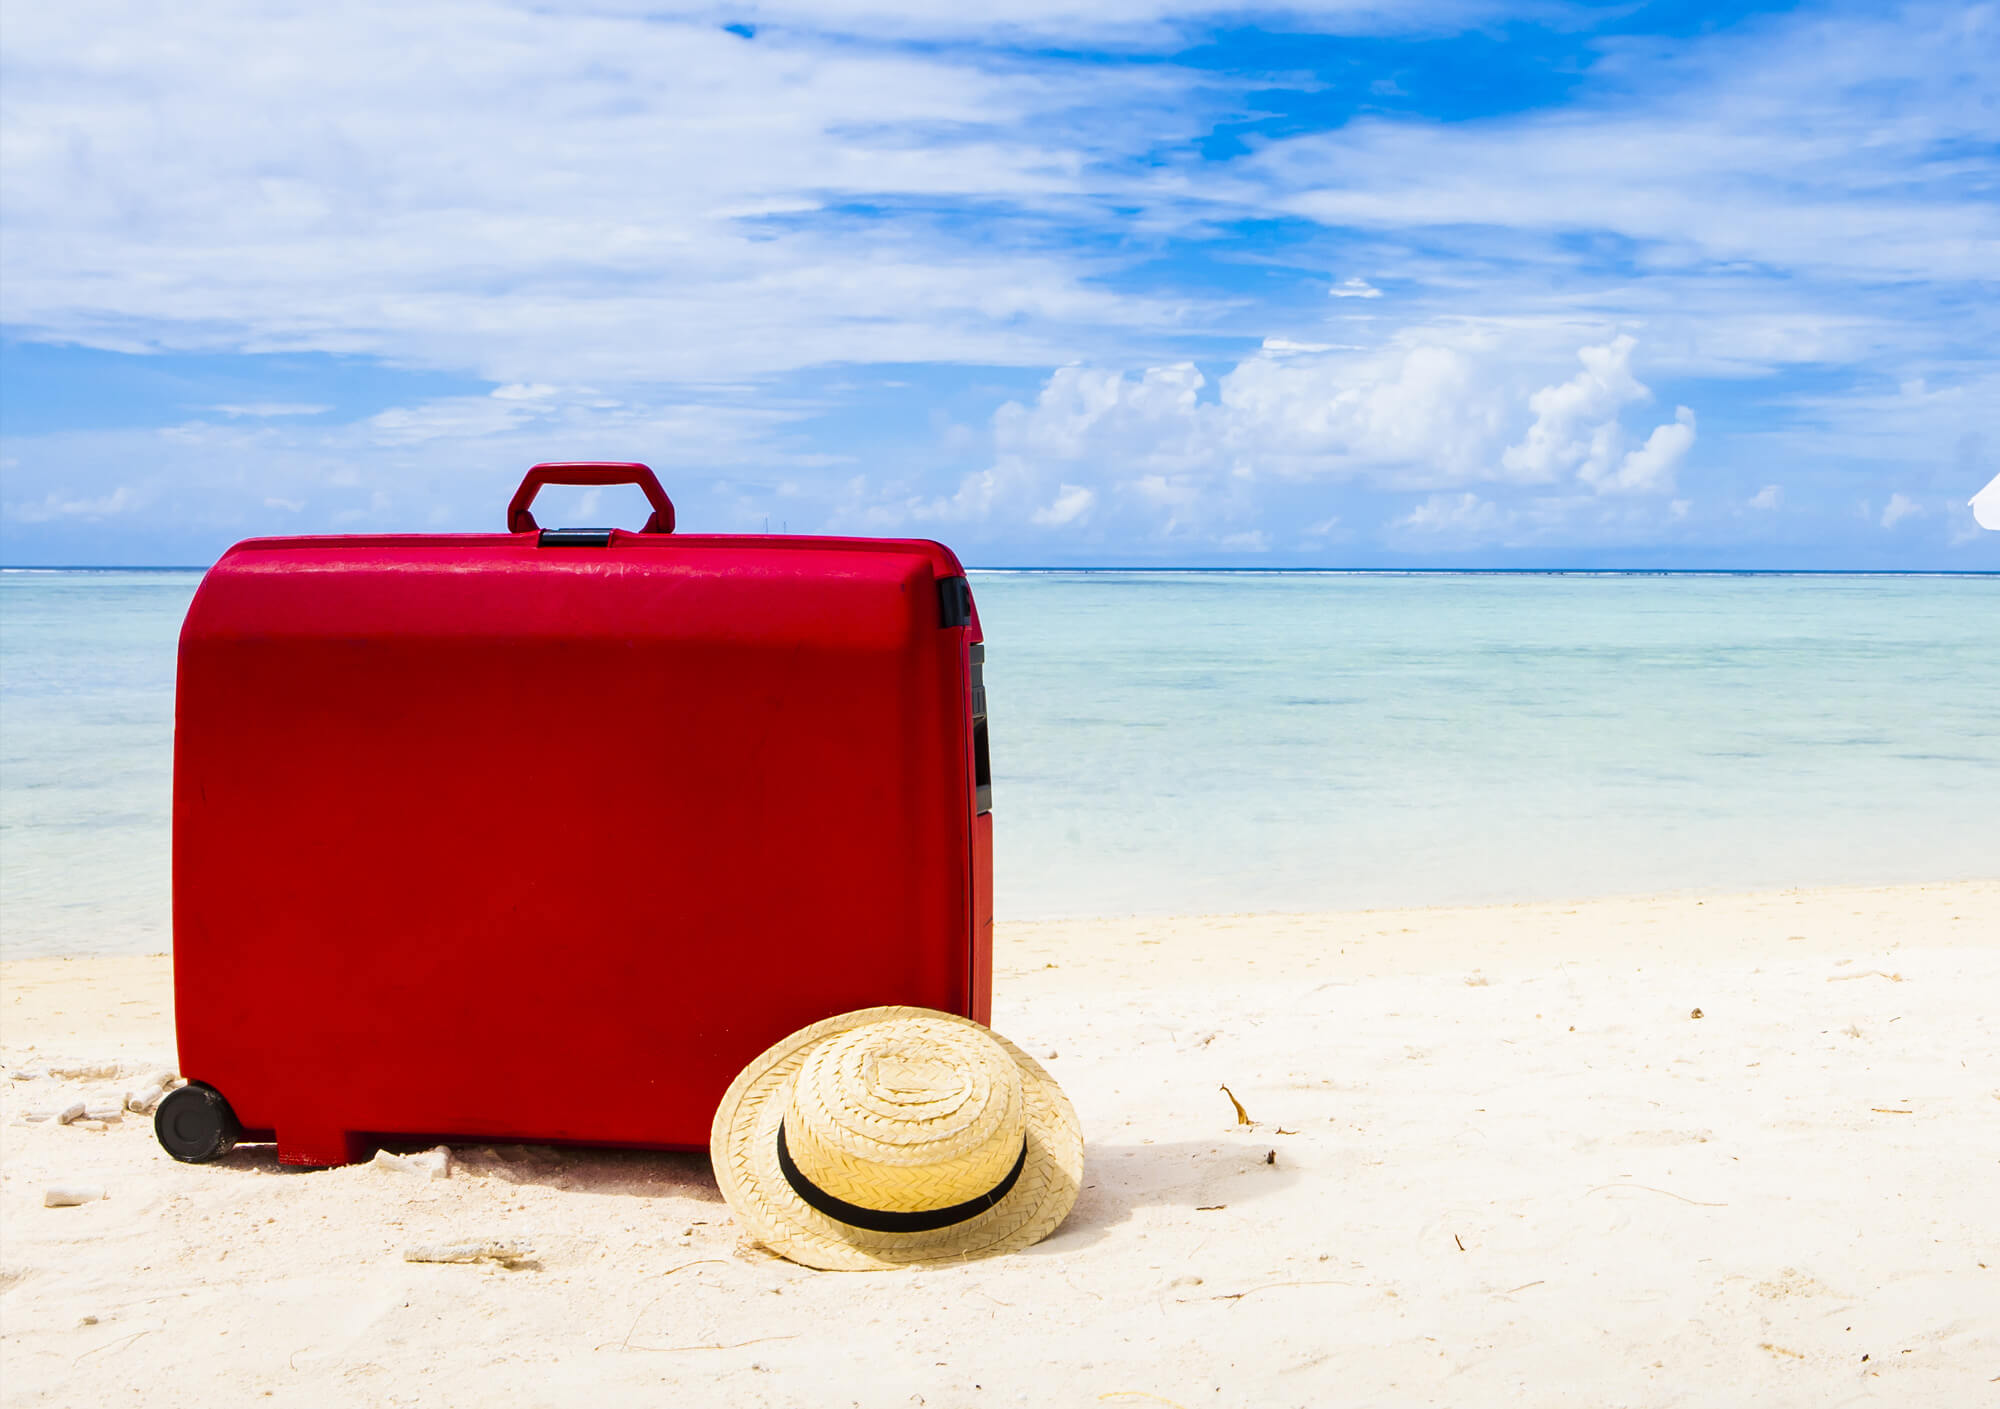 Red suitcase on beach